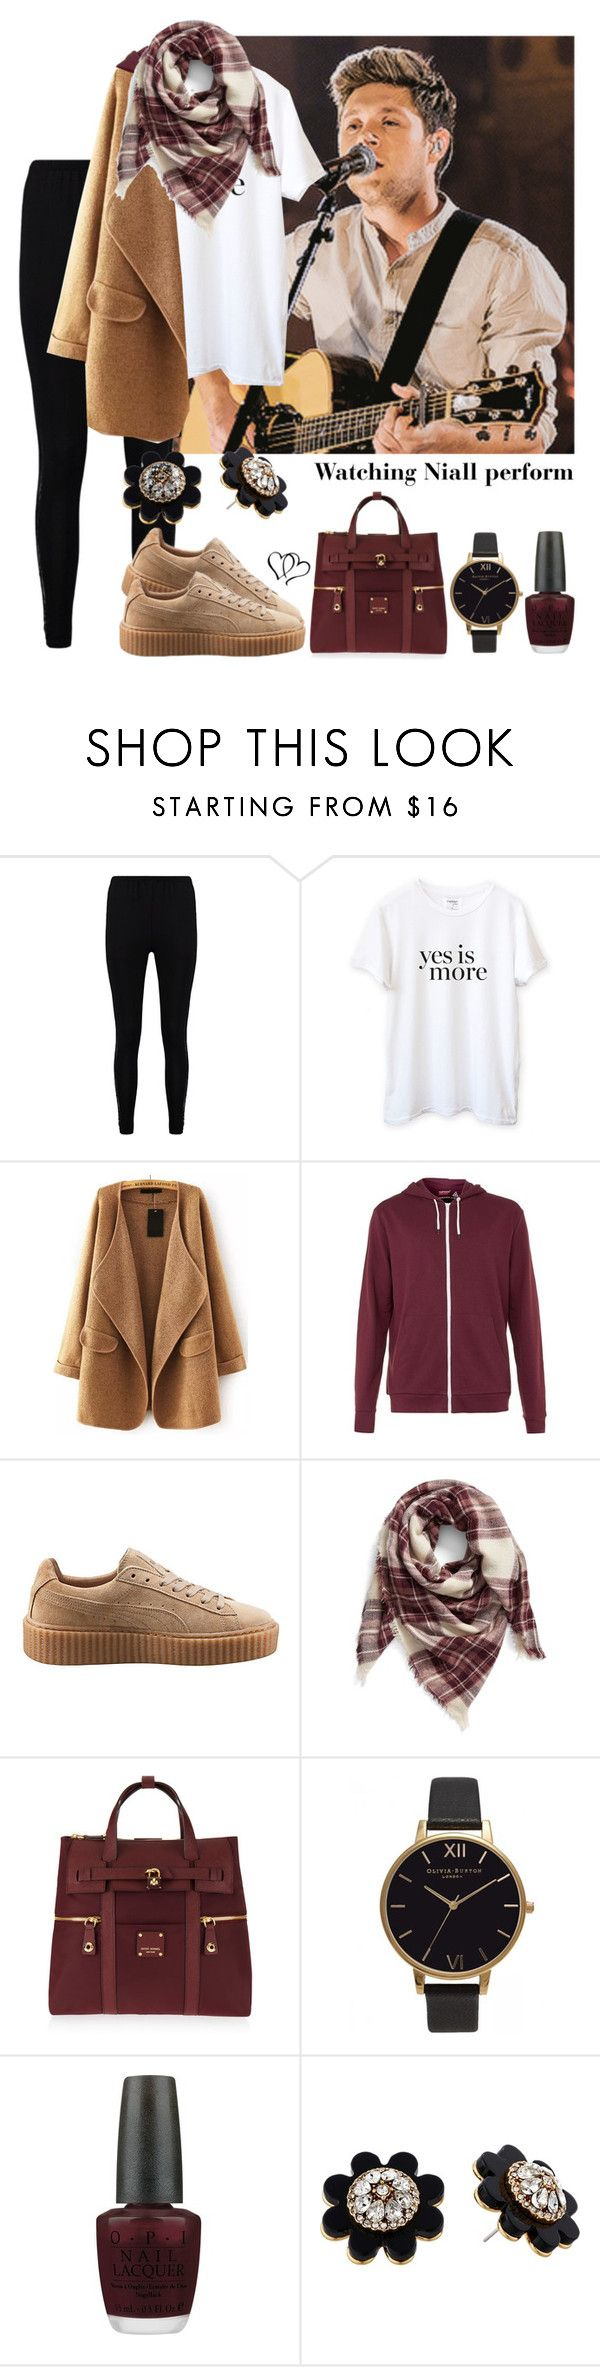 """""""Watching Niall Horan perform"""" by tonioverthetop ❤ liked on Polyvore featuring Boohoo, Sincerely, Jules, Topman, Puma, BP., Henri Bendel, Olivia Burton, OPI and Kate Spade"""